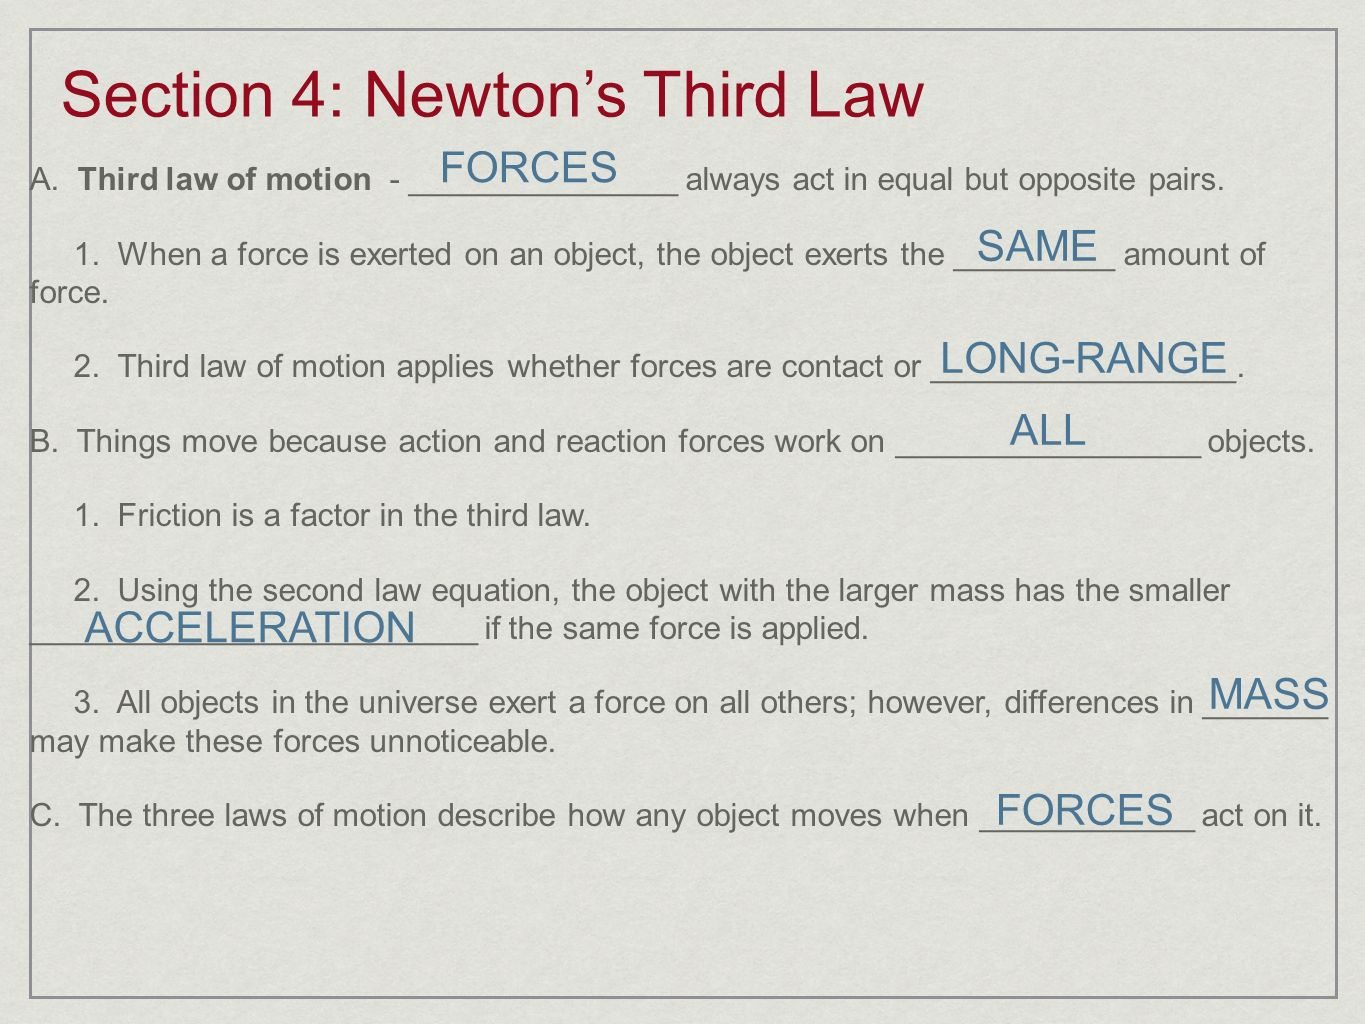 Section 4: Newton's Third Law